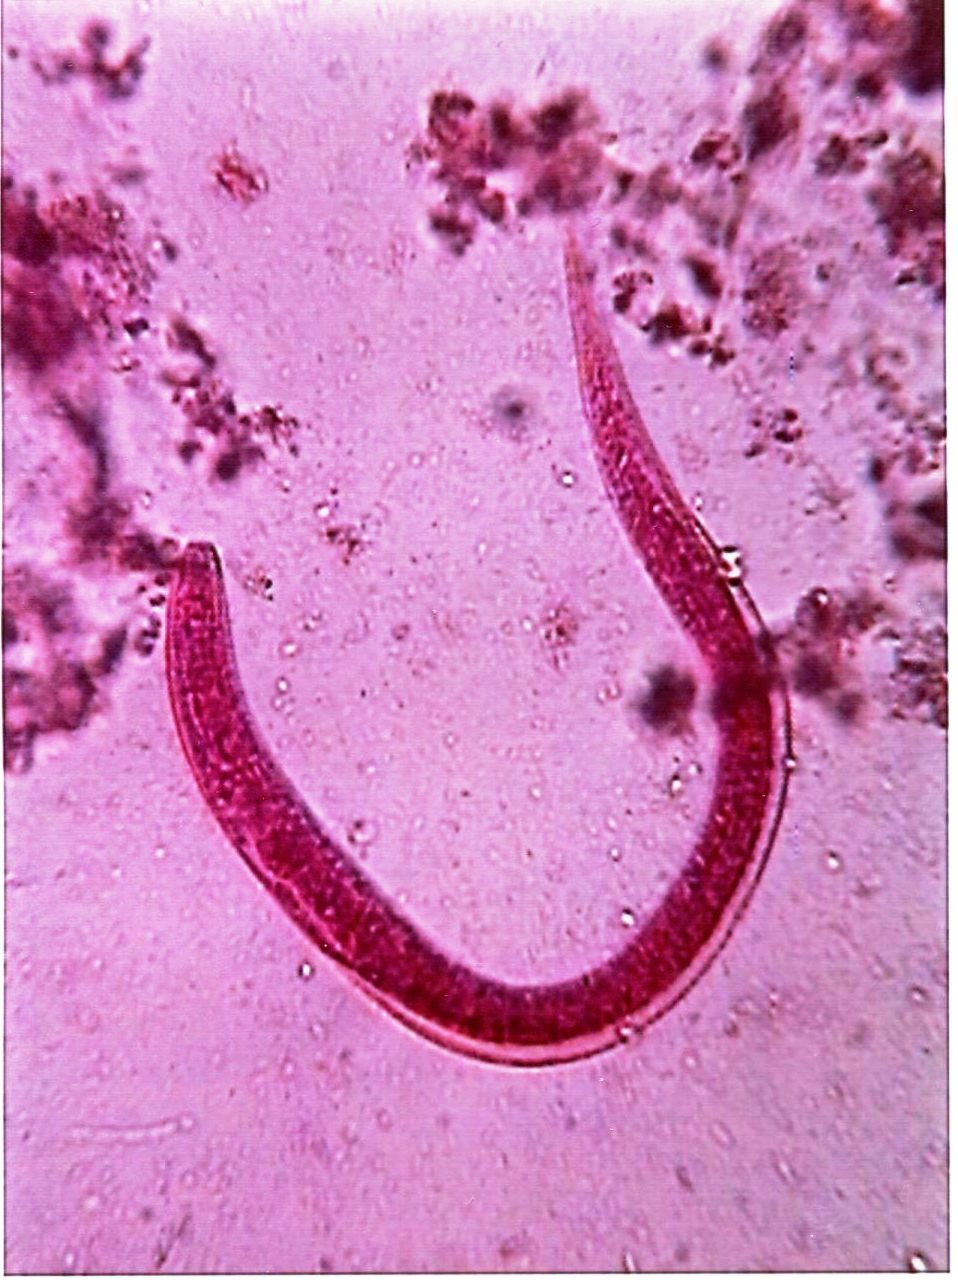 Tapeworm Eggs In Human Stool